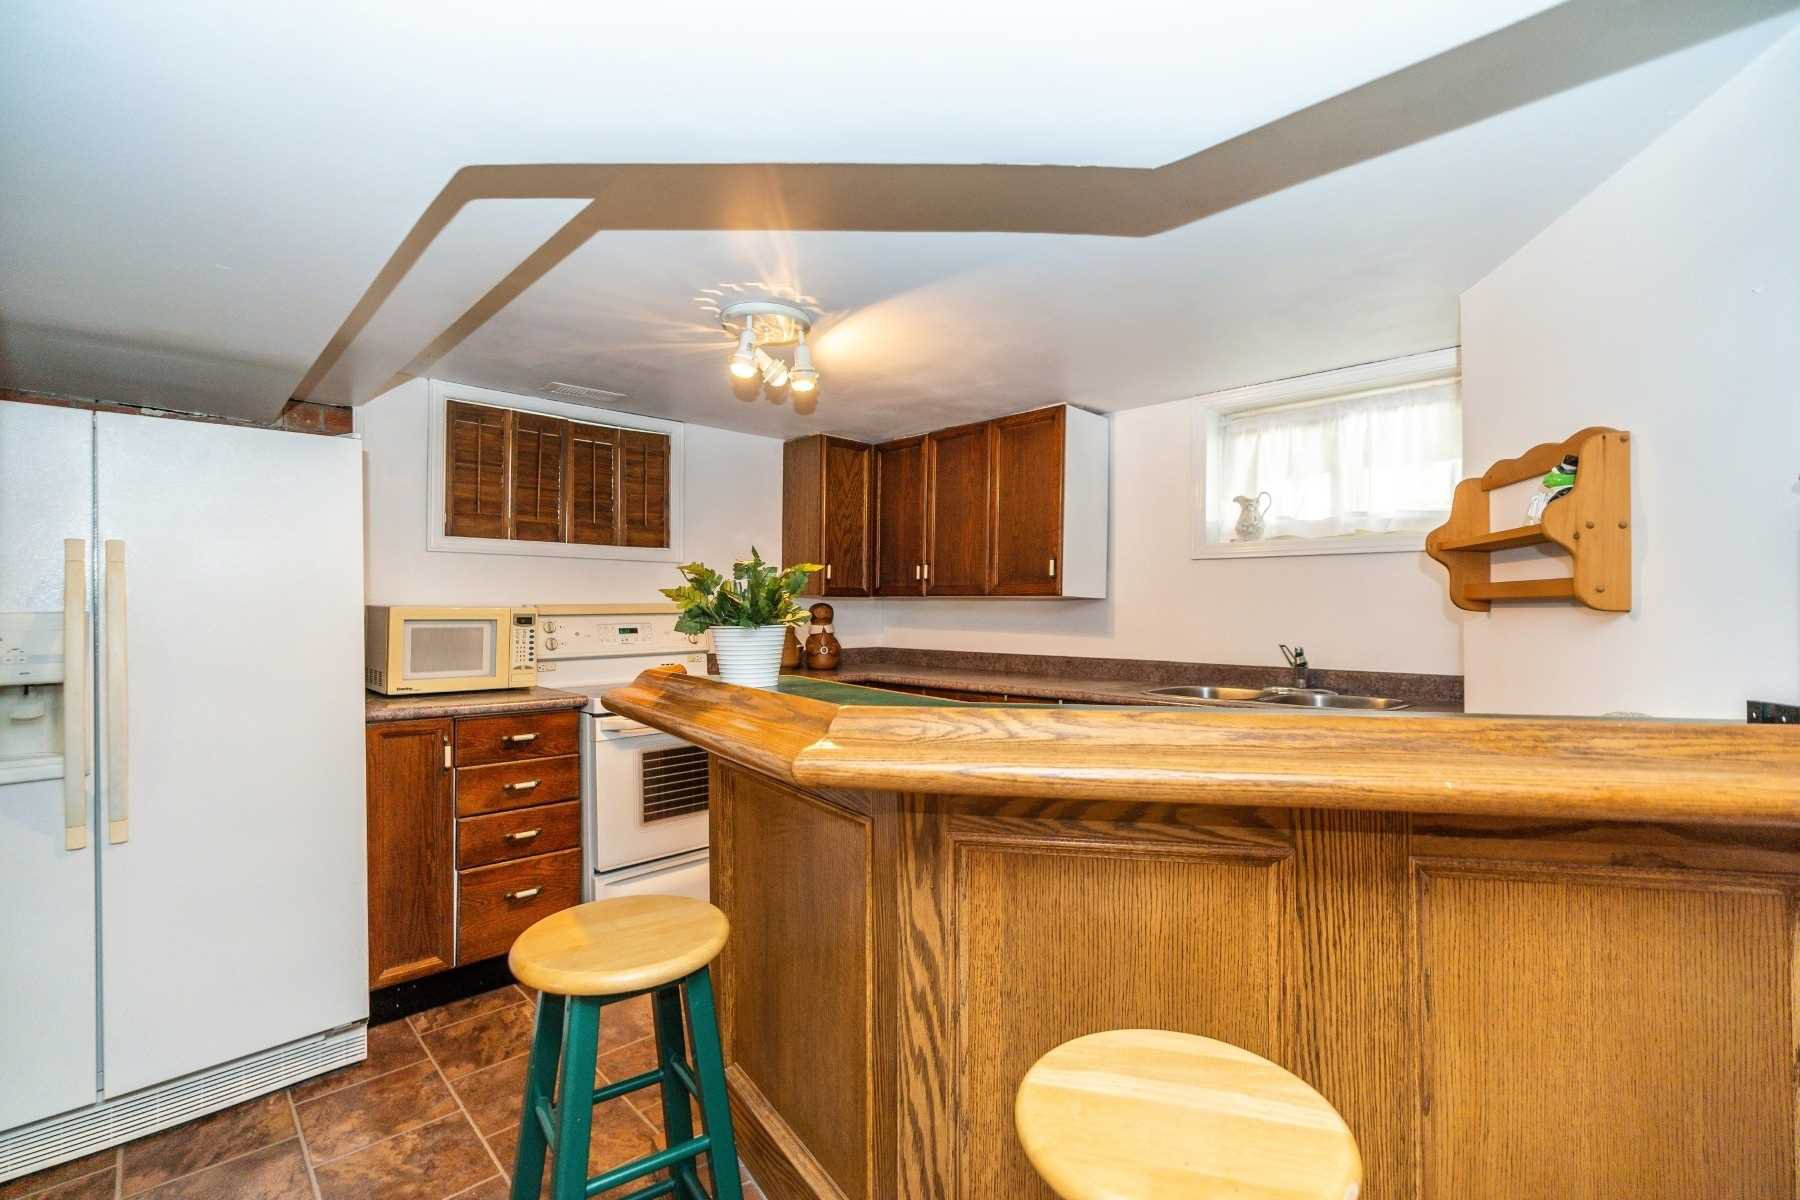 Photo 24: Photos: 40 Eastlawn Street in Oshawa: Donevan House (Bungalow) for sale : MLS®# E4769026